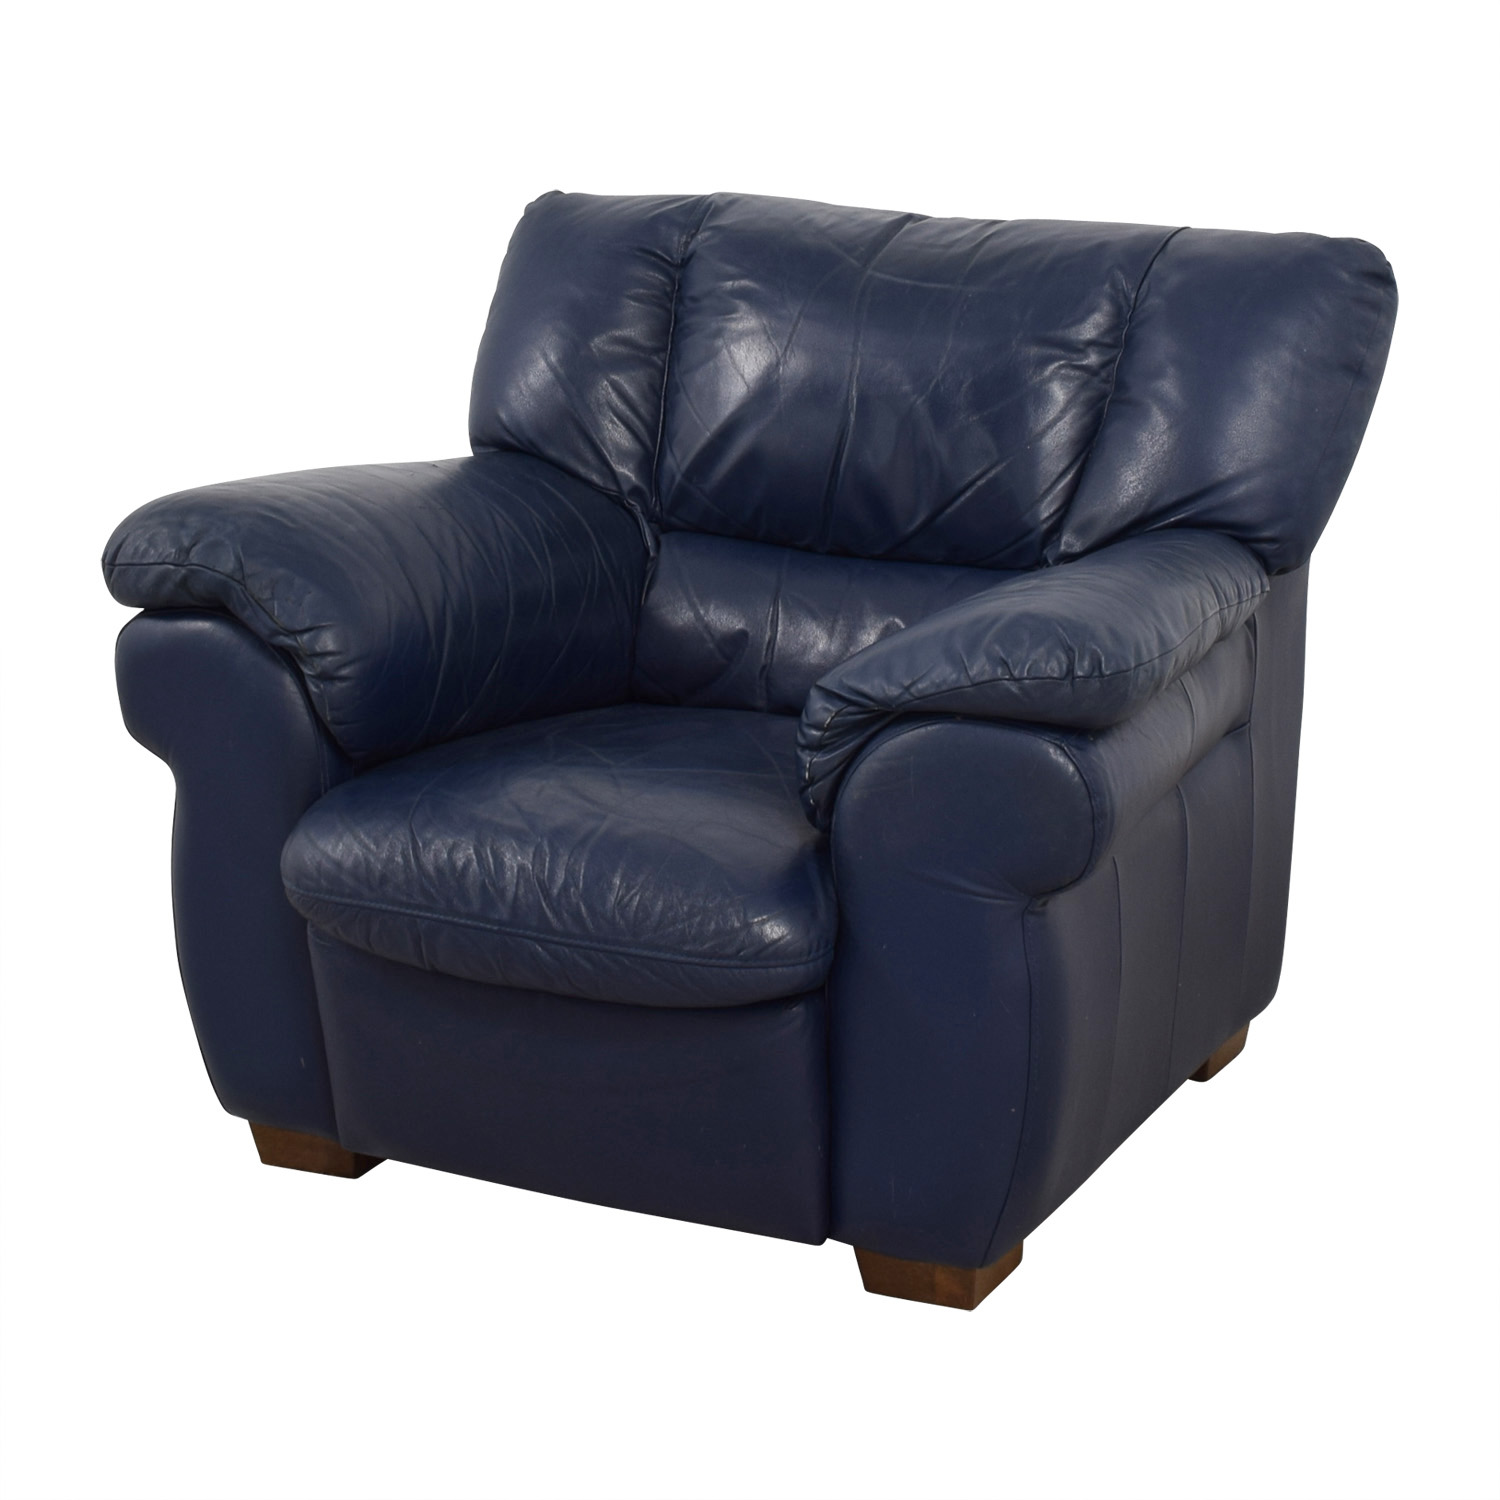 Gentil ... Macys Macys Navy Blue Leather Sofa Chair Price ...